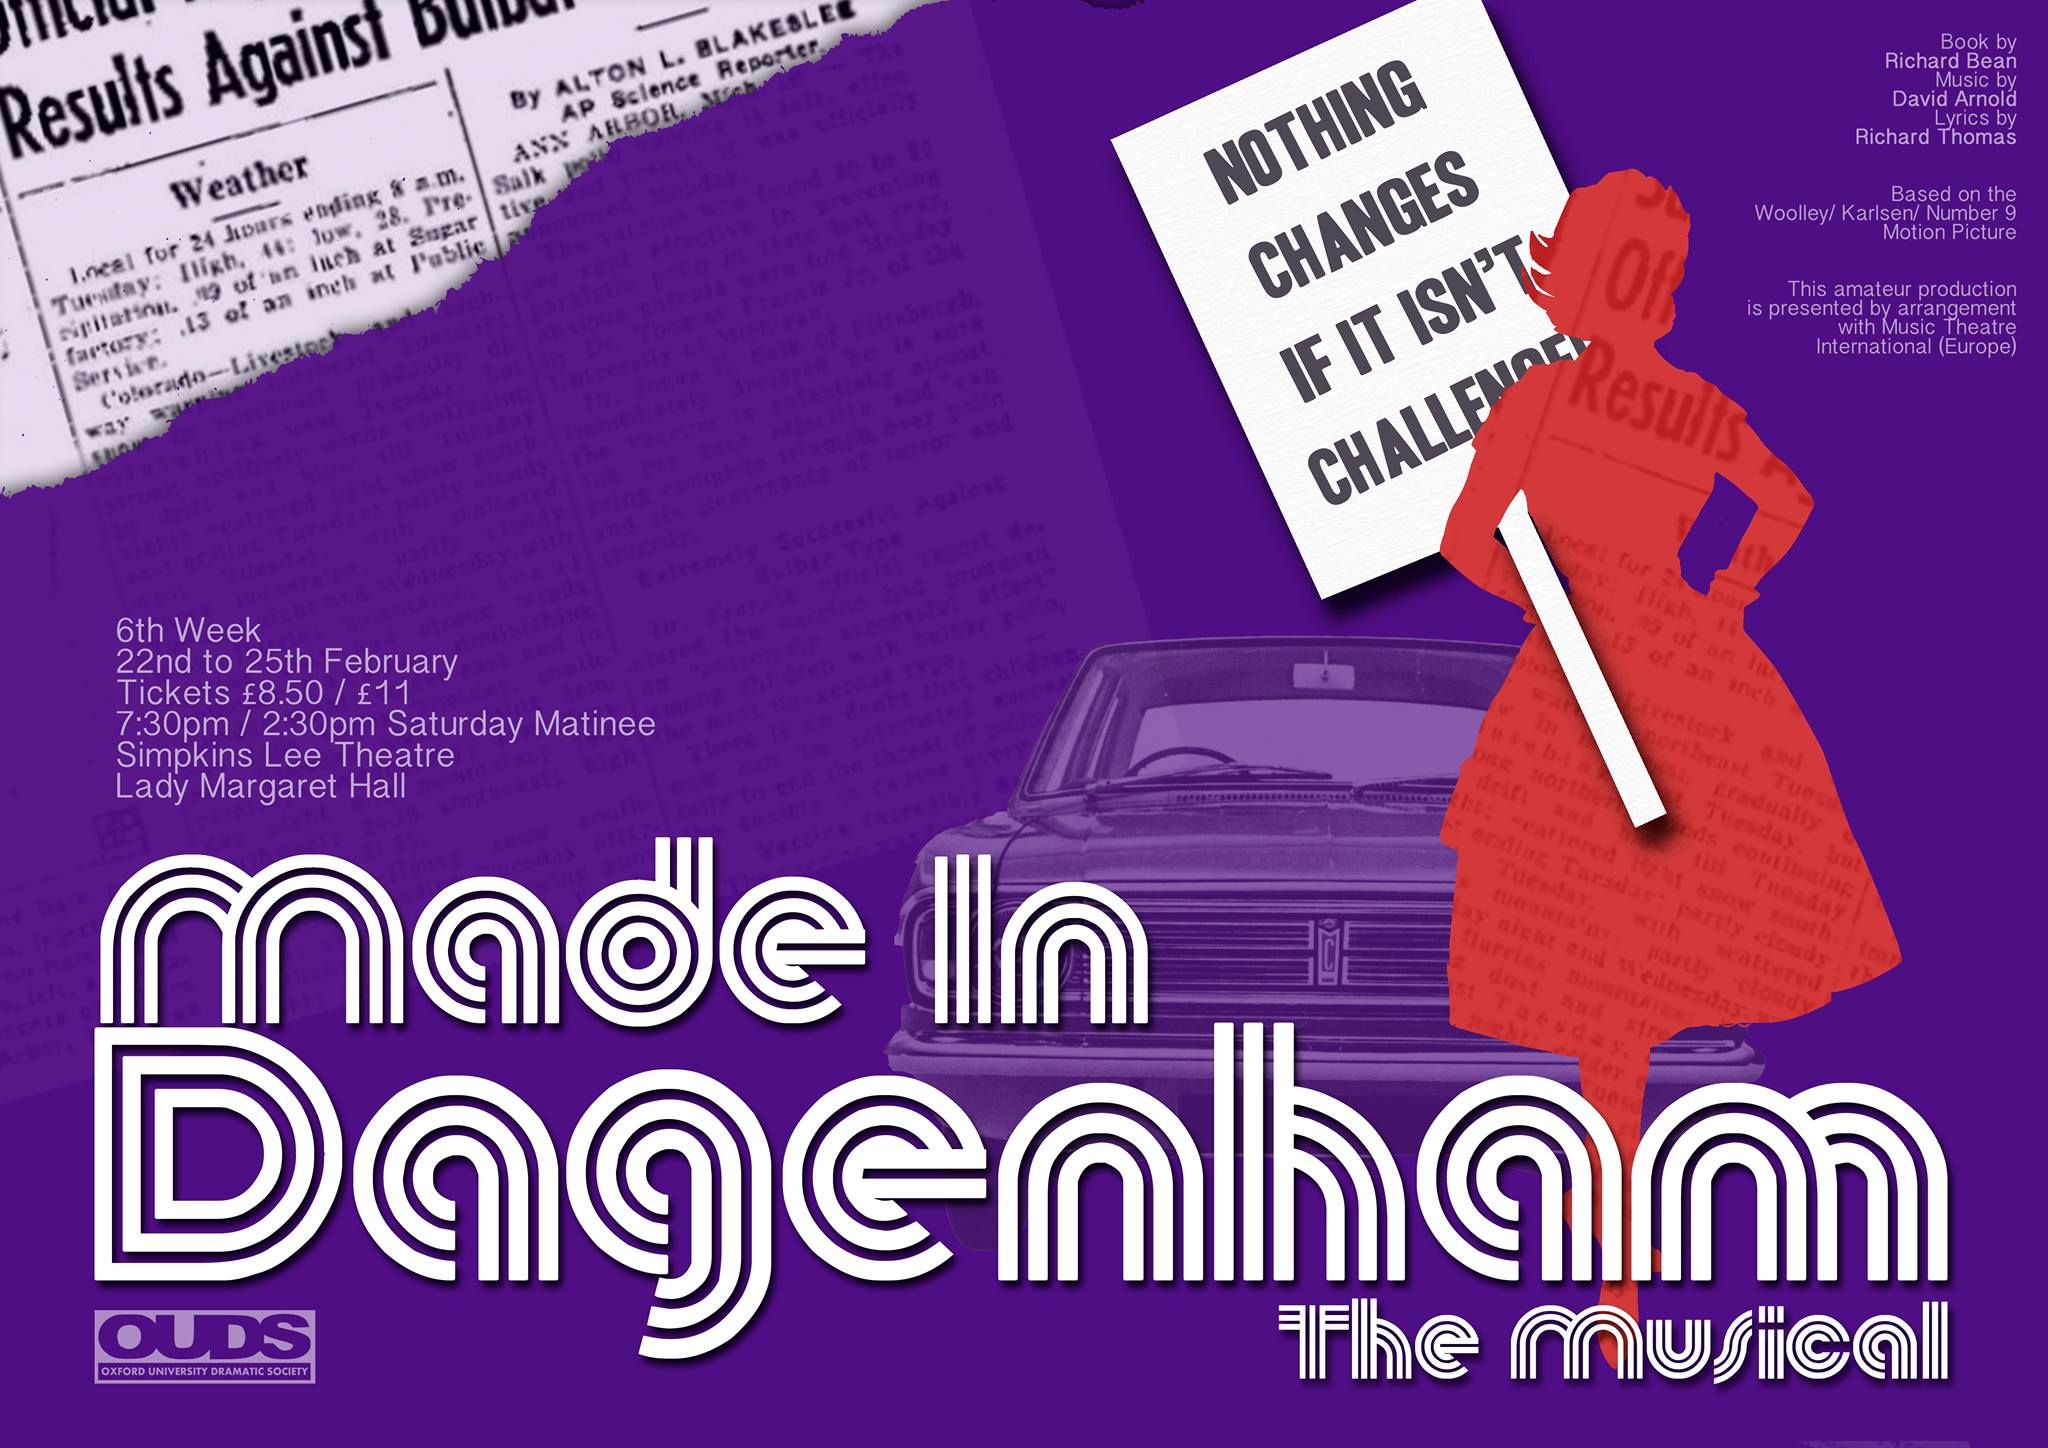 Made in Dagenham: Affecting, Thoughtful and Triumphant